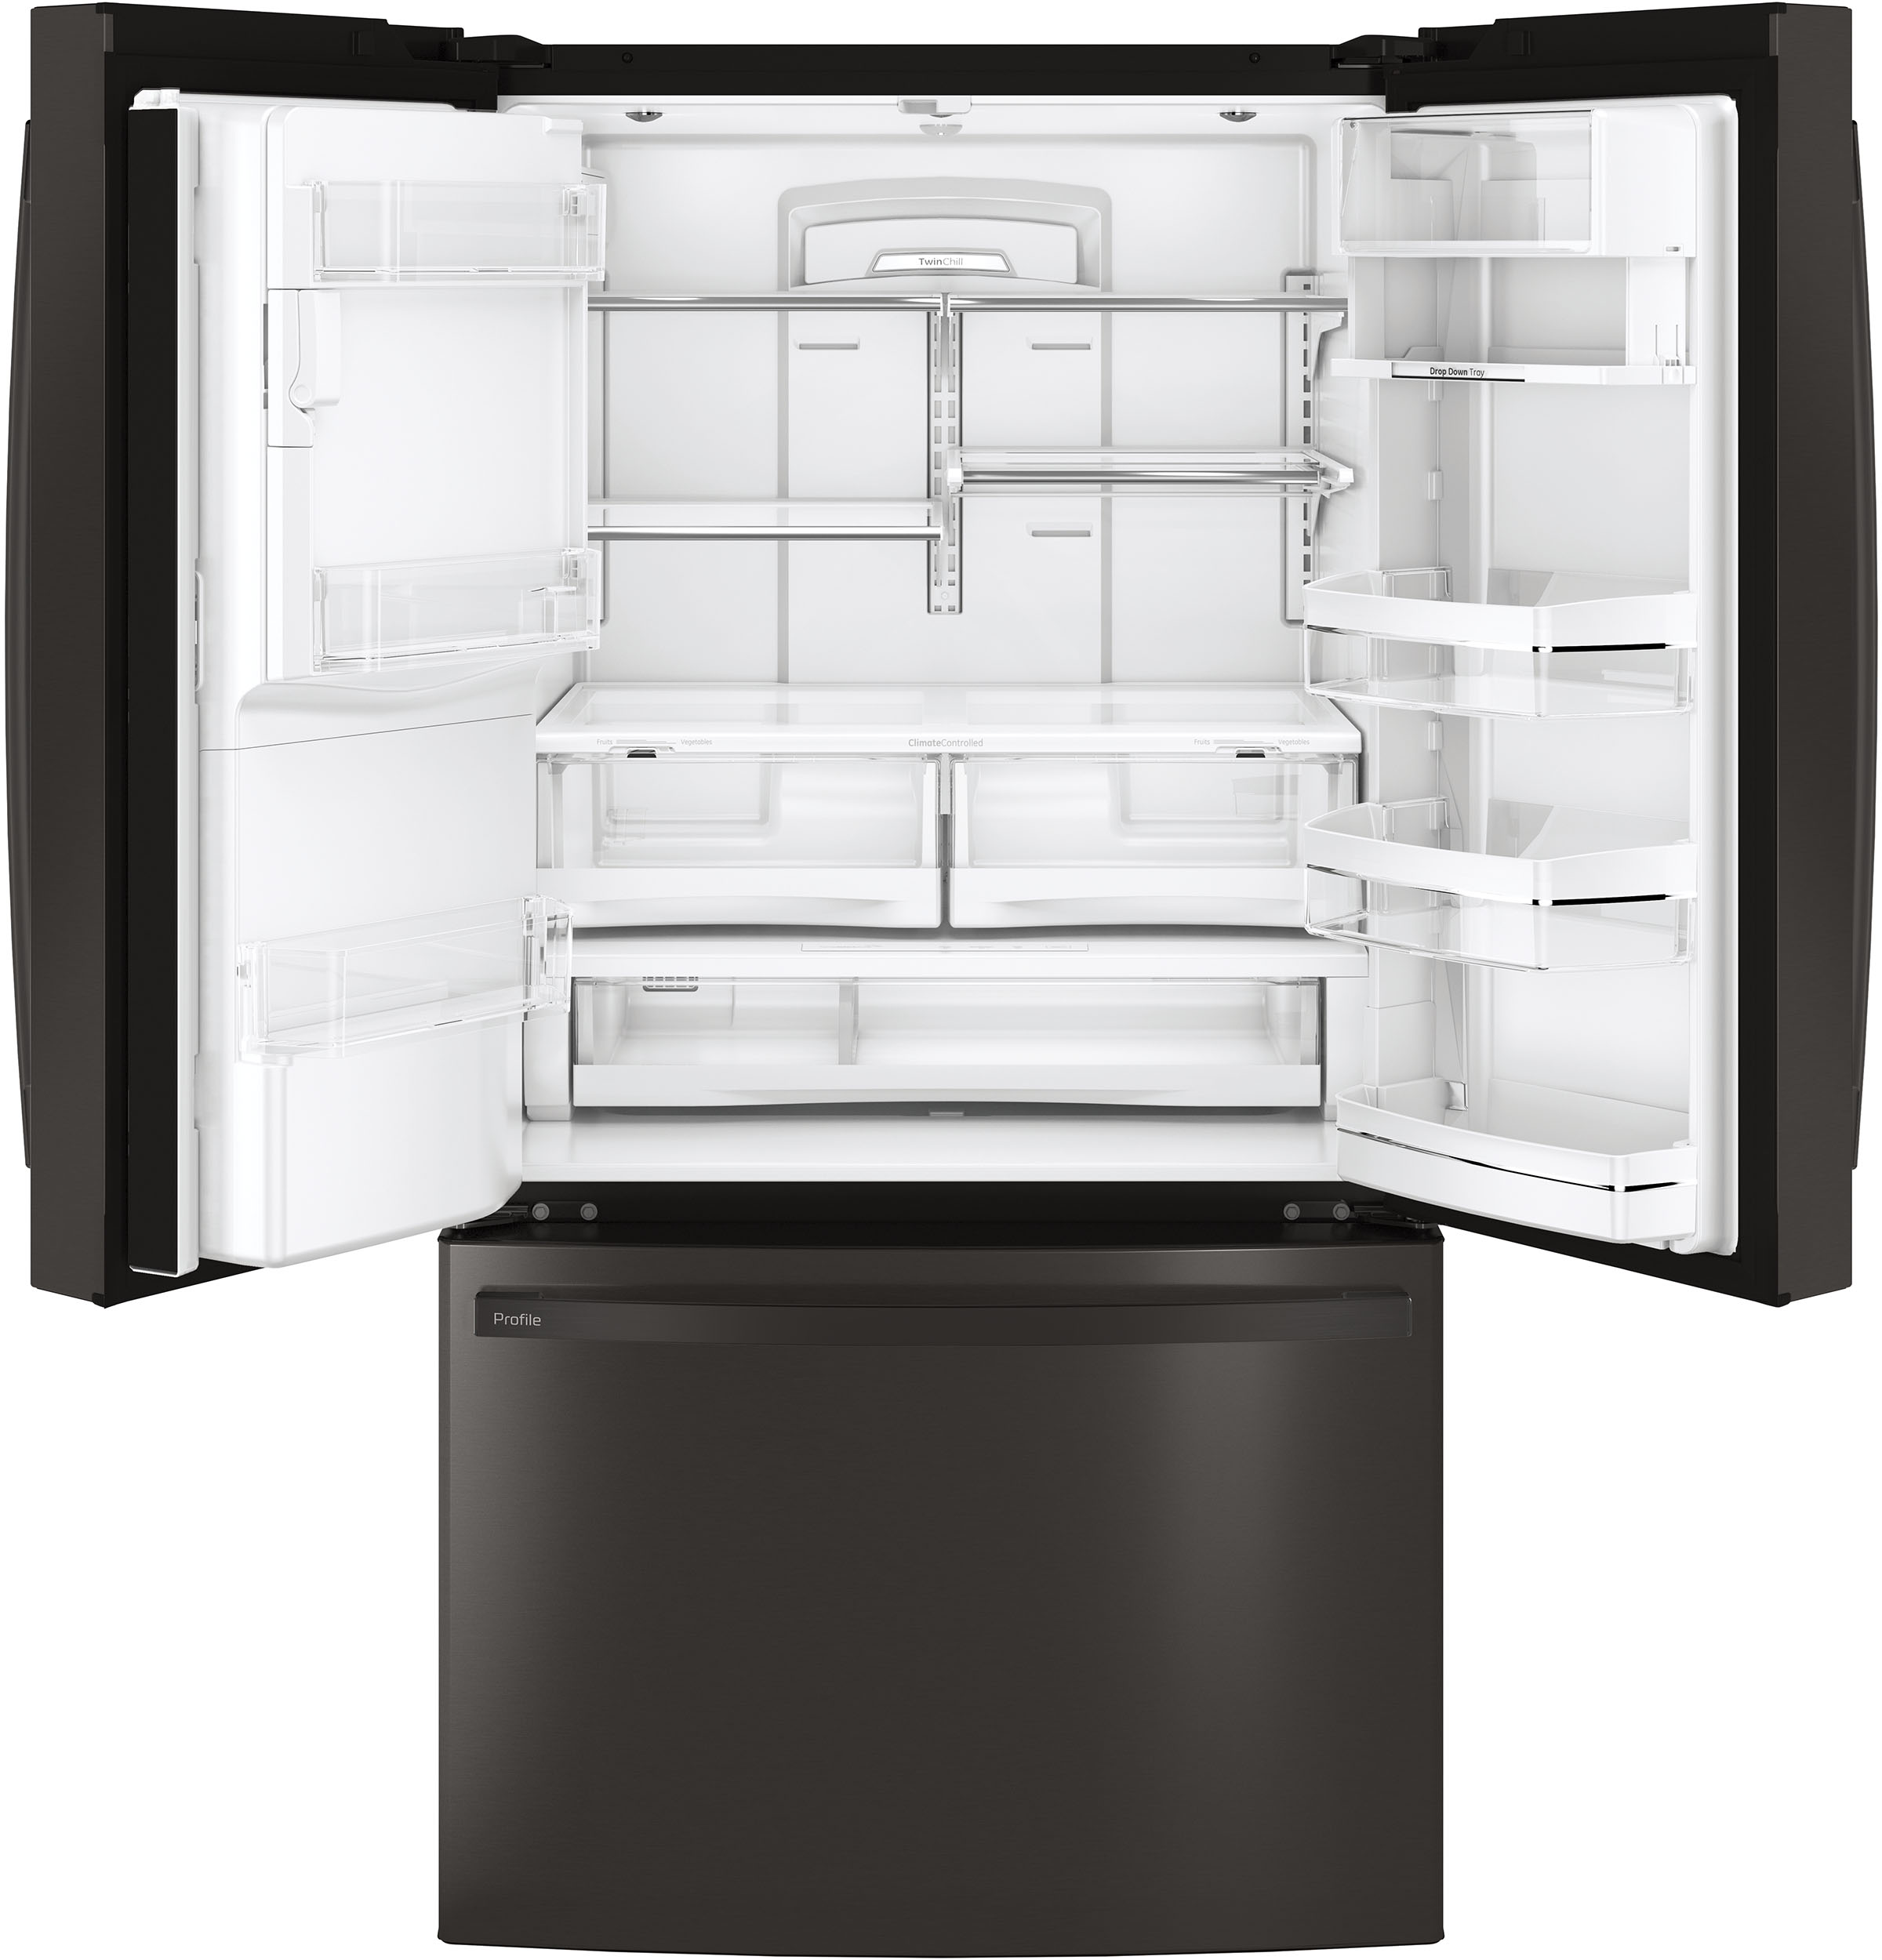 Model: PFE28KBLTS | GE Profile GE Profile™ Series ENERGY STAR® 27.7 Cu. Ft. French-Door Refrigerator with Hands-Free AutoFill